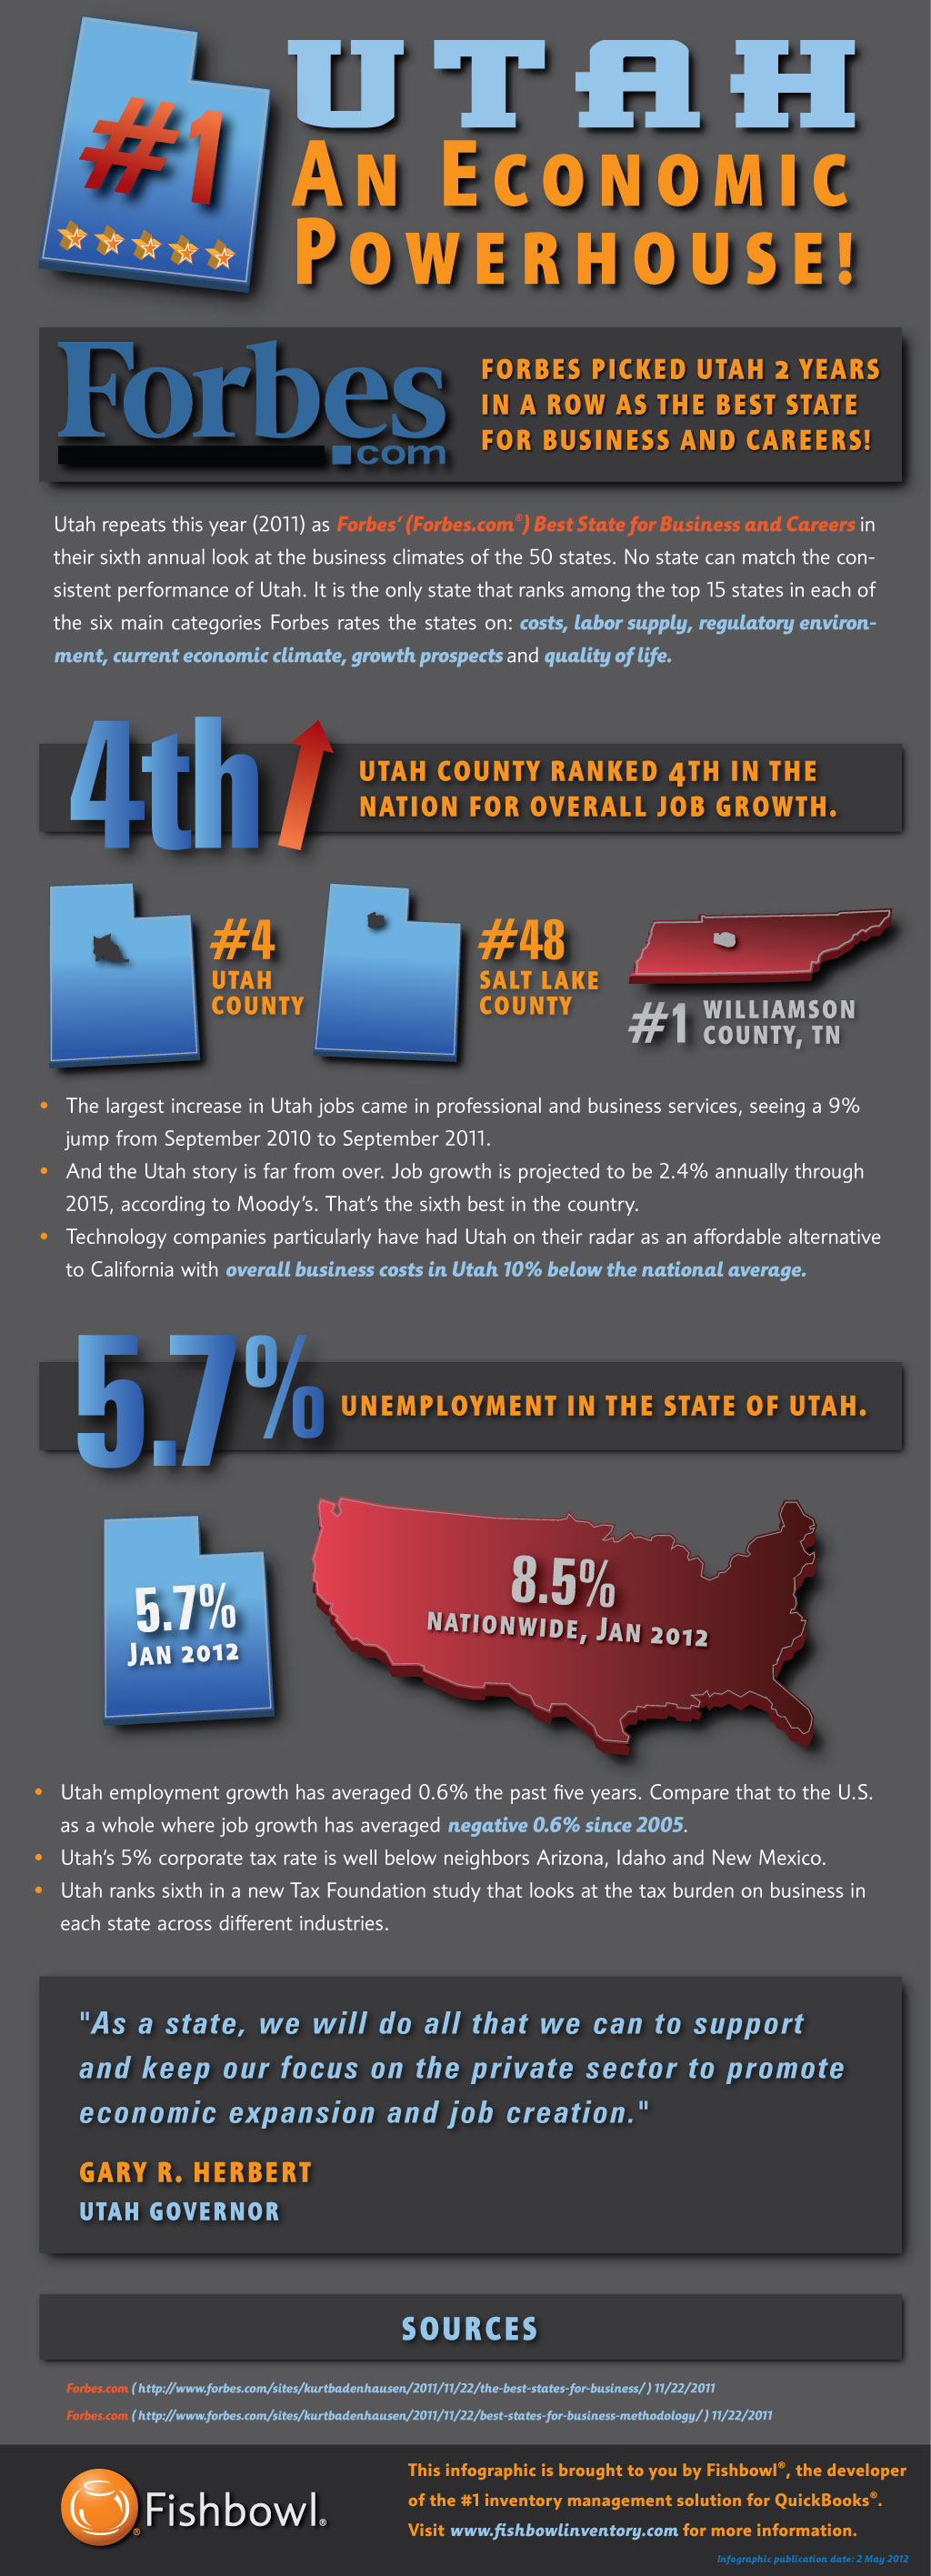 Infographic - Utah Economic Powerhouse, Forbes picked Utah two years in a row for best state for business and careers.